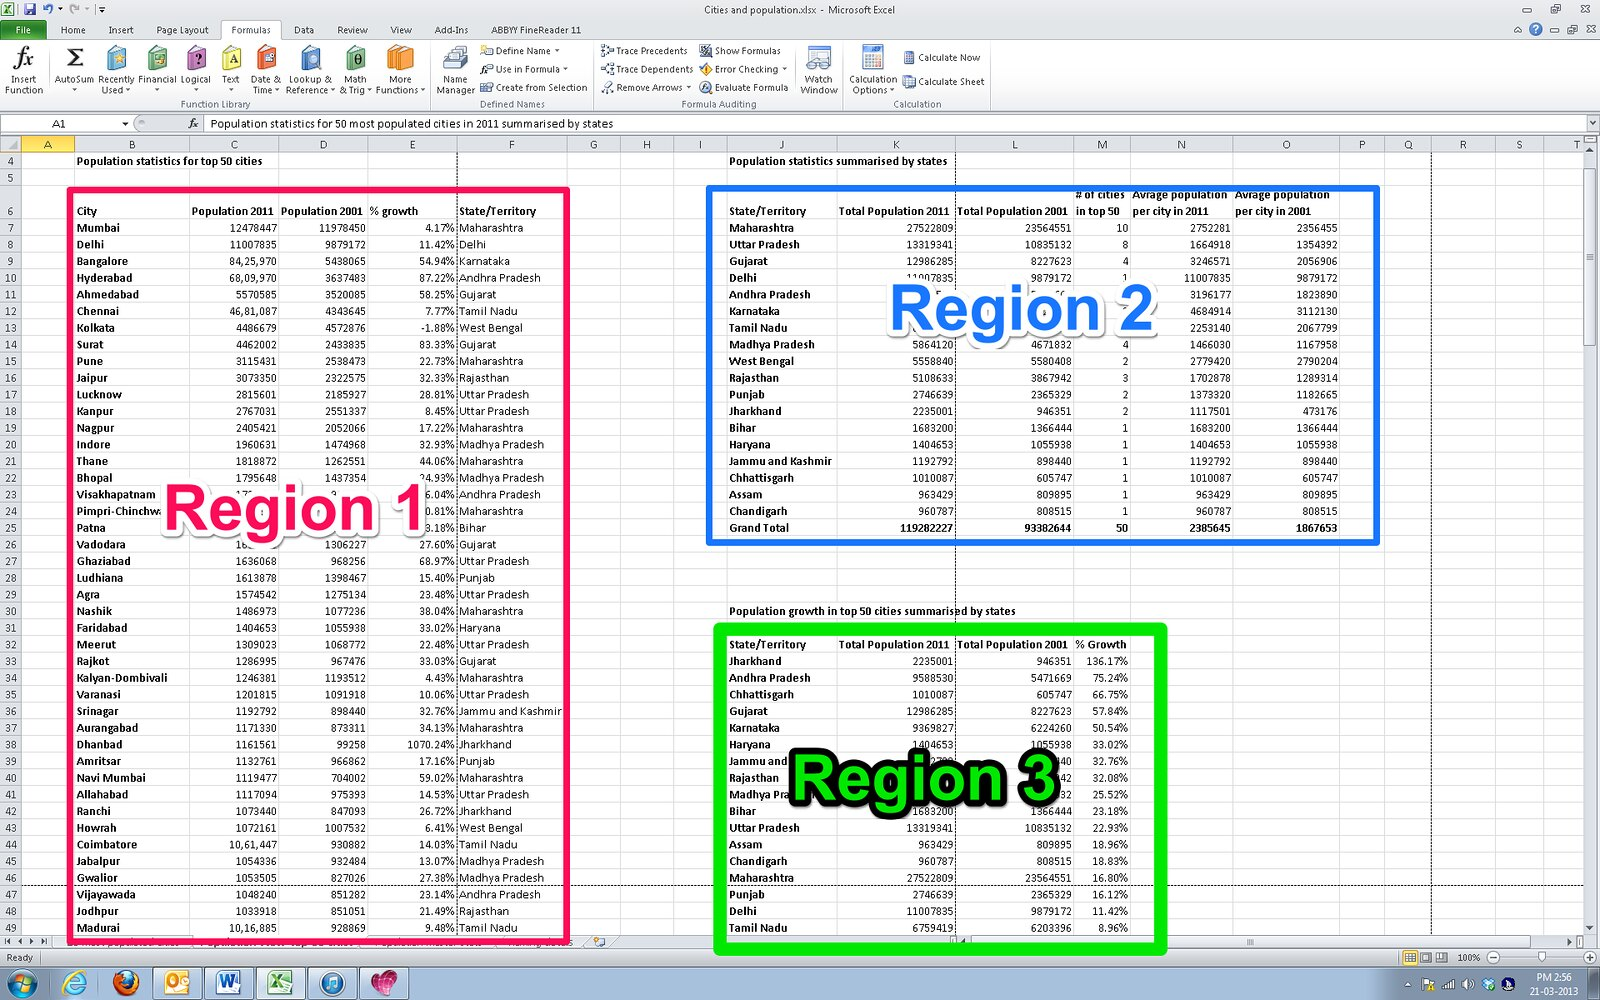 Reading Row And Column Titles In Excel Using Jaws